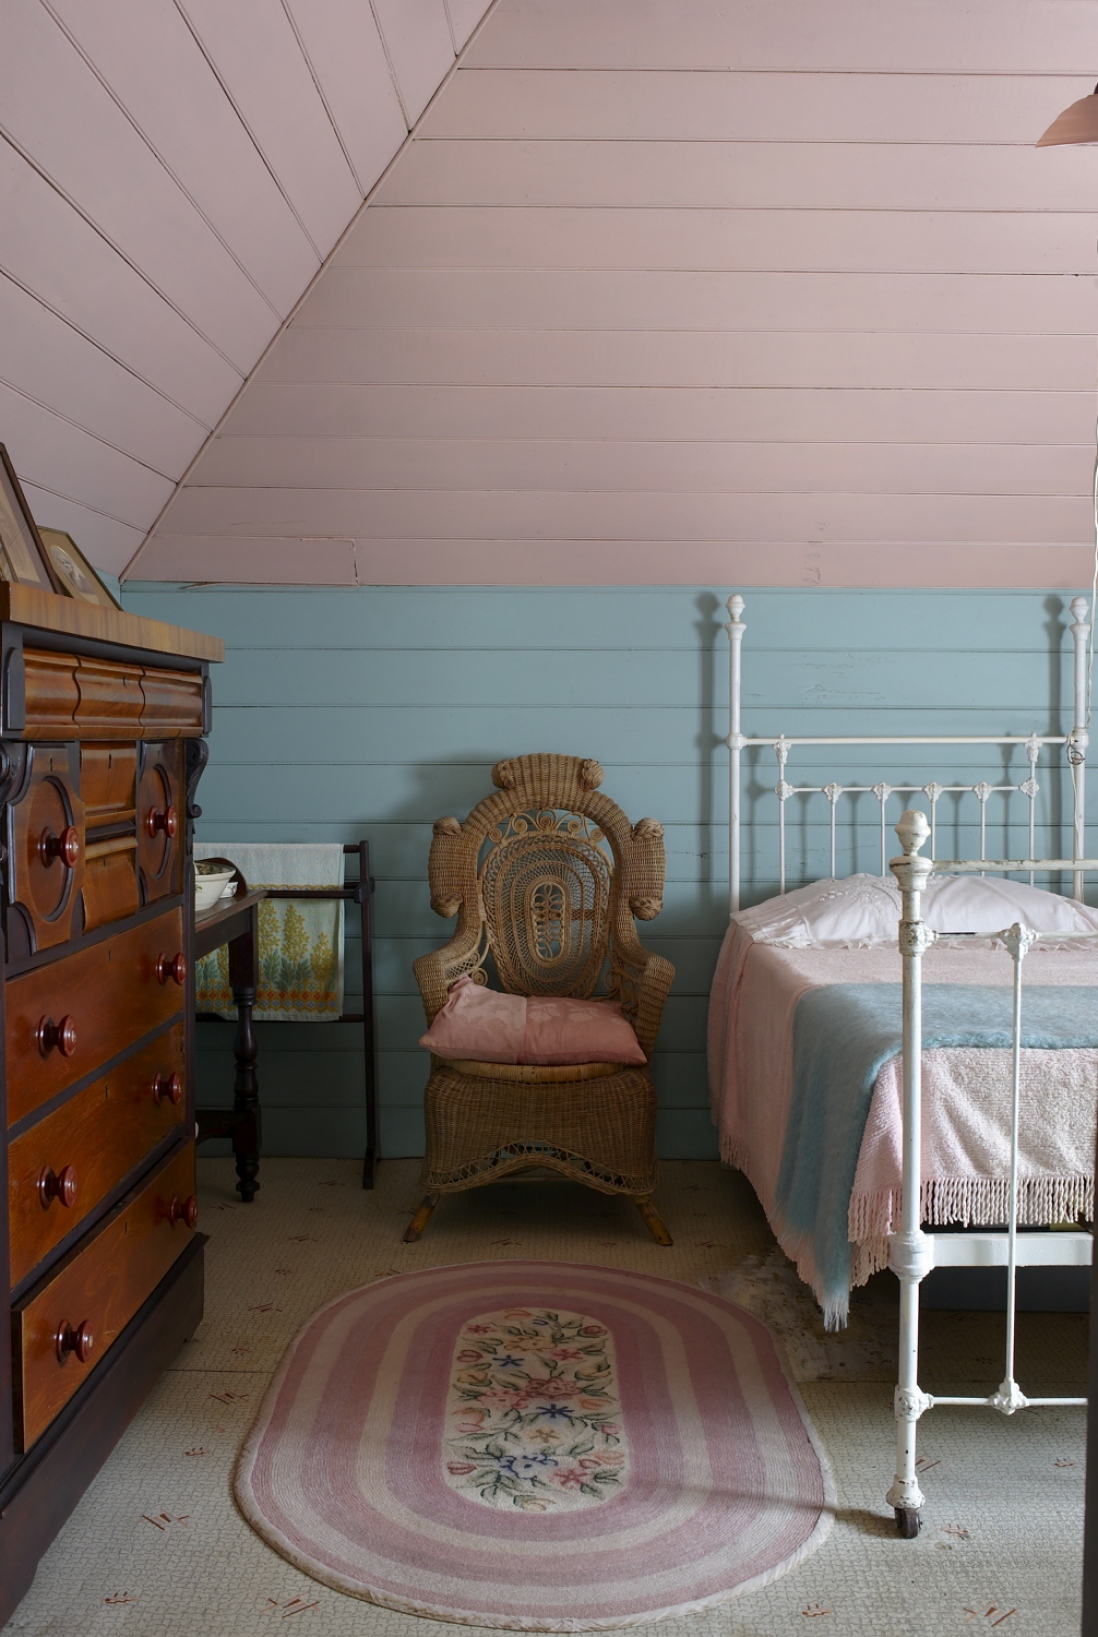 Pink and blue painted wooden room with single metal framed bed, next to armchair and chest of drawers.